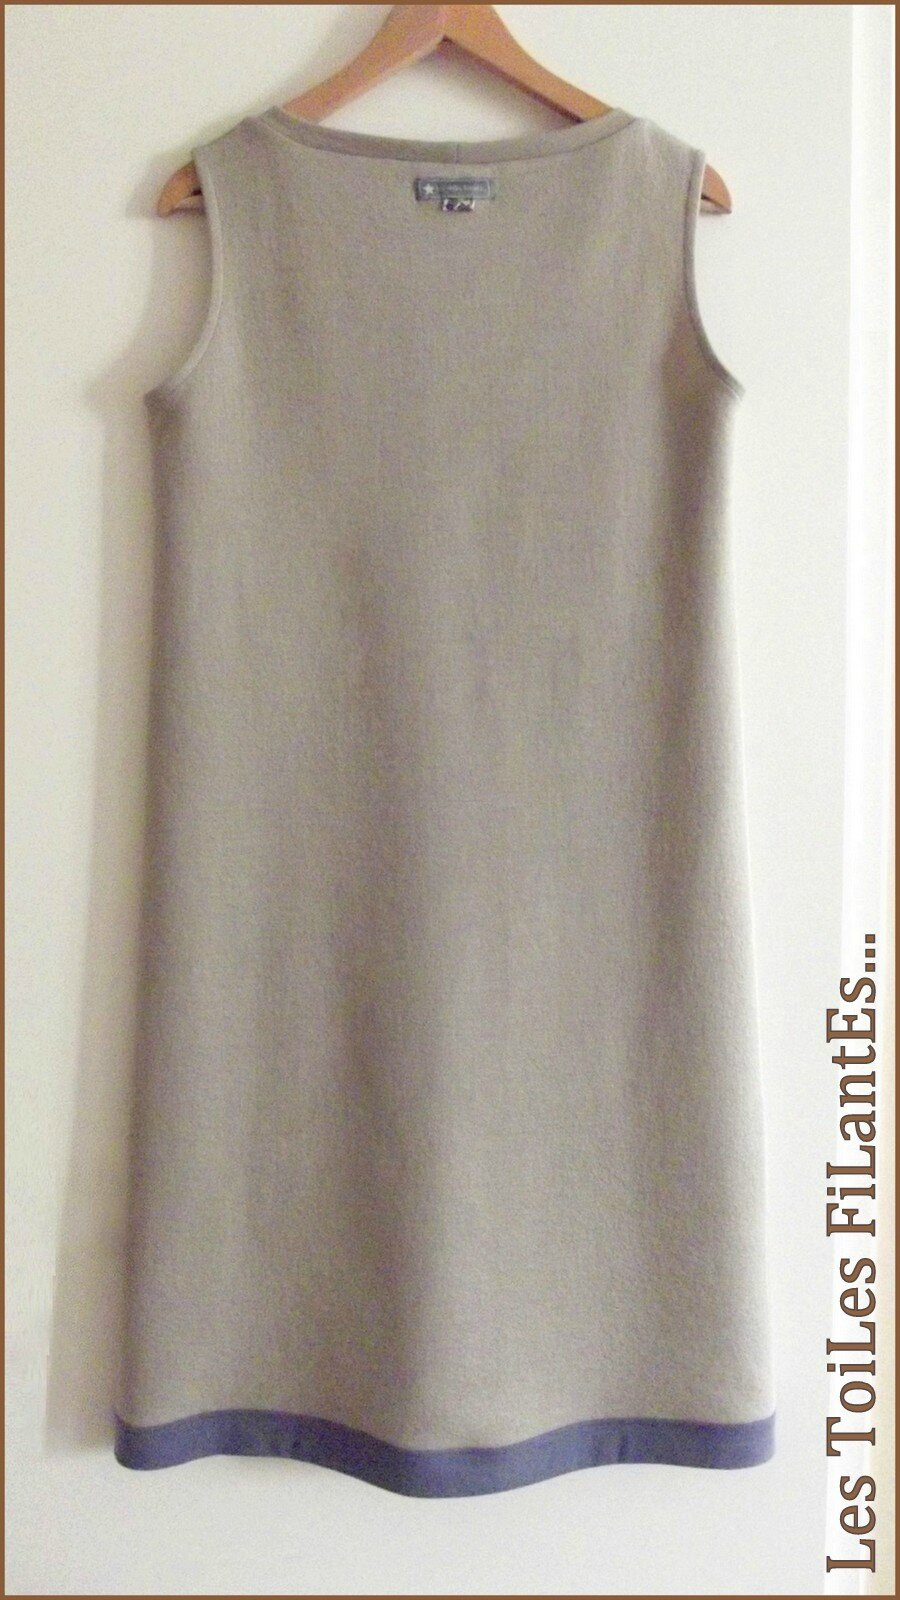 Robe jersey de laine taupe beige5